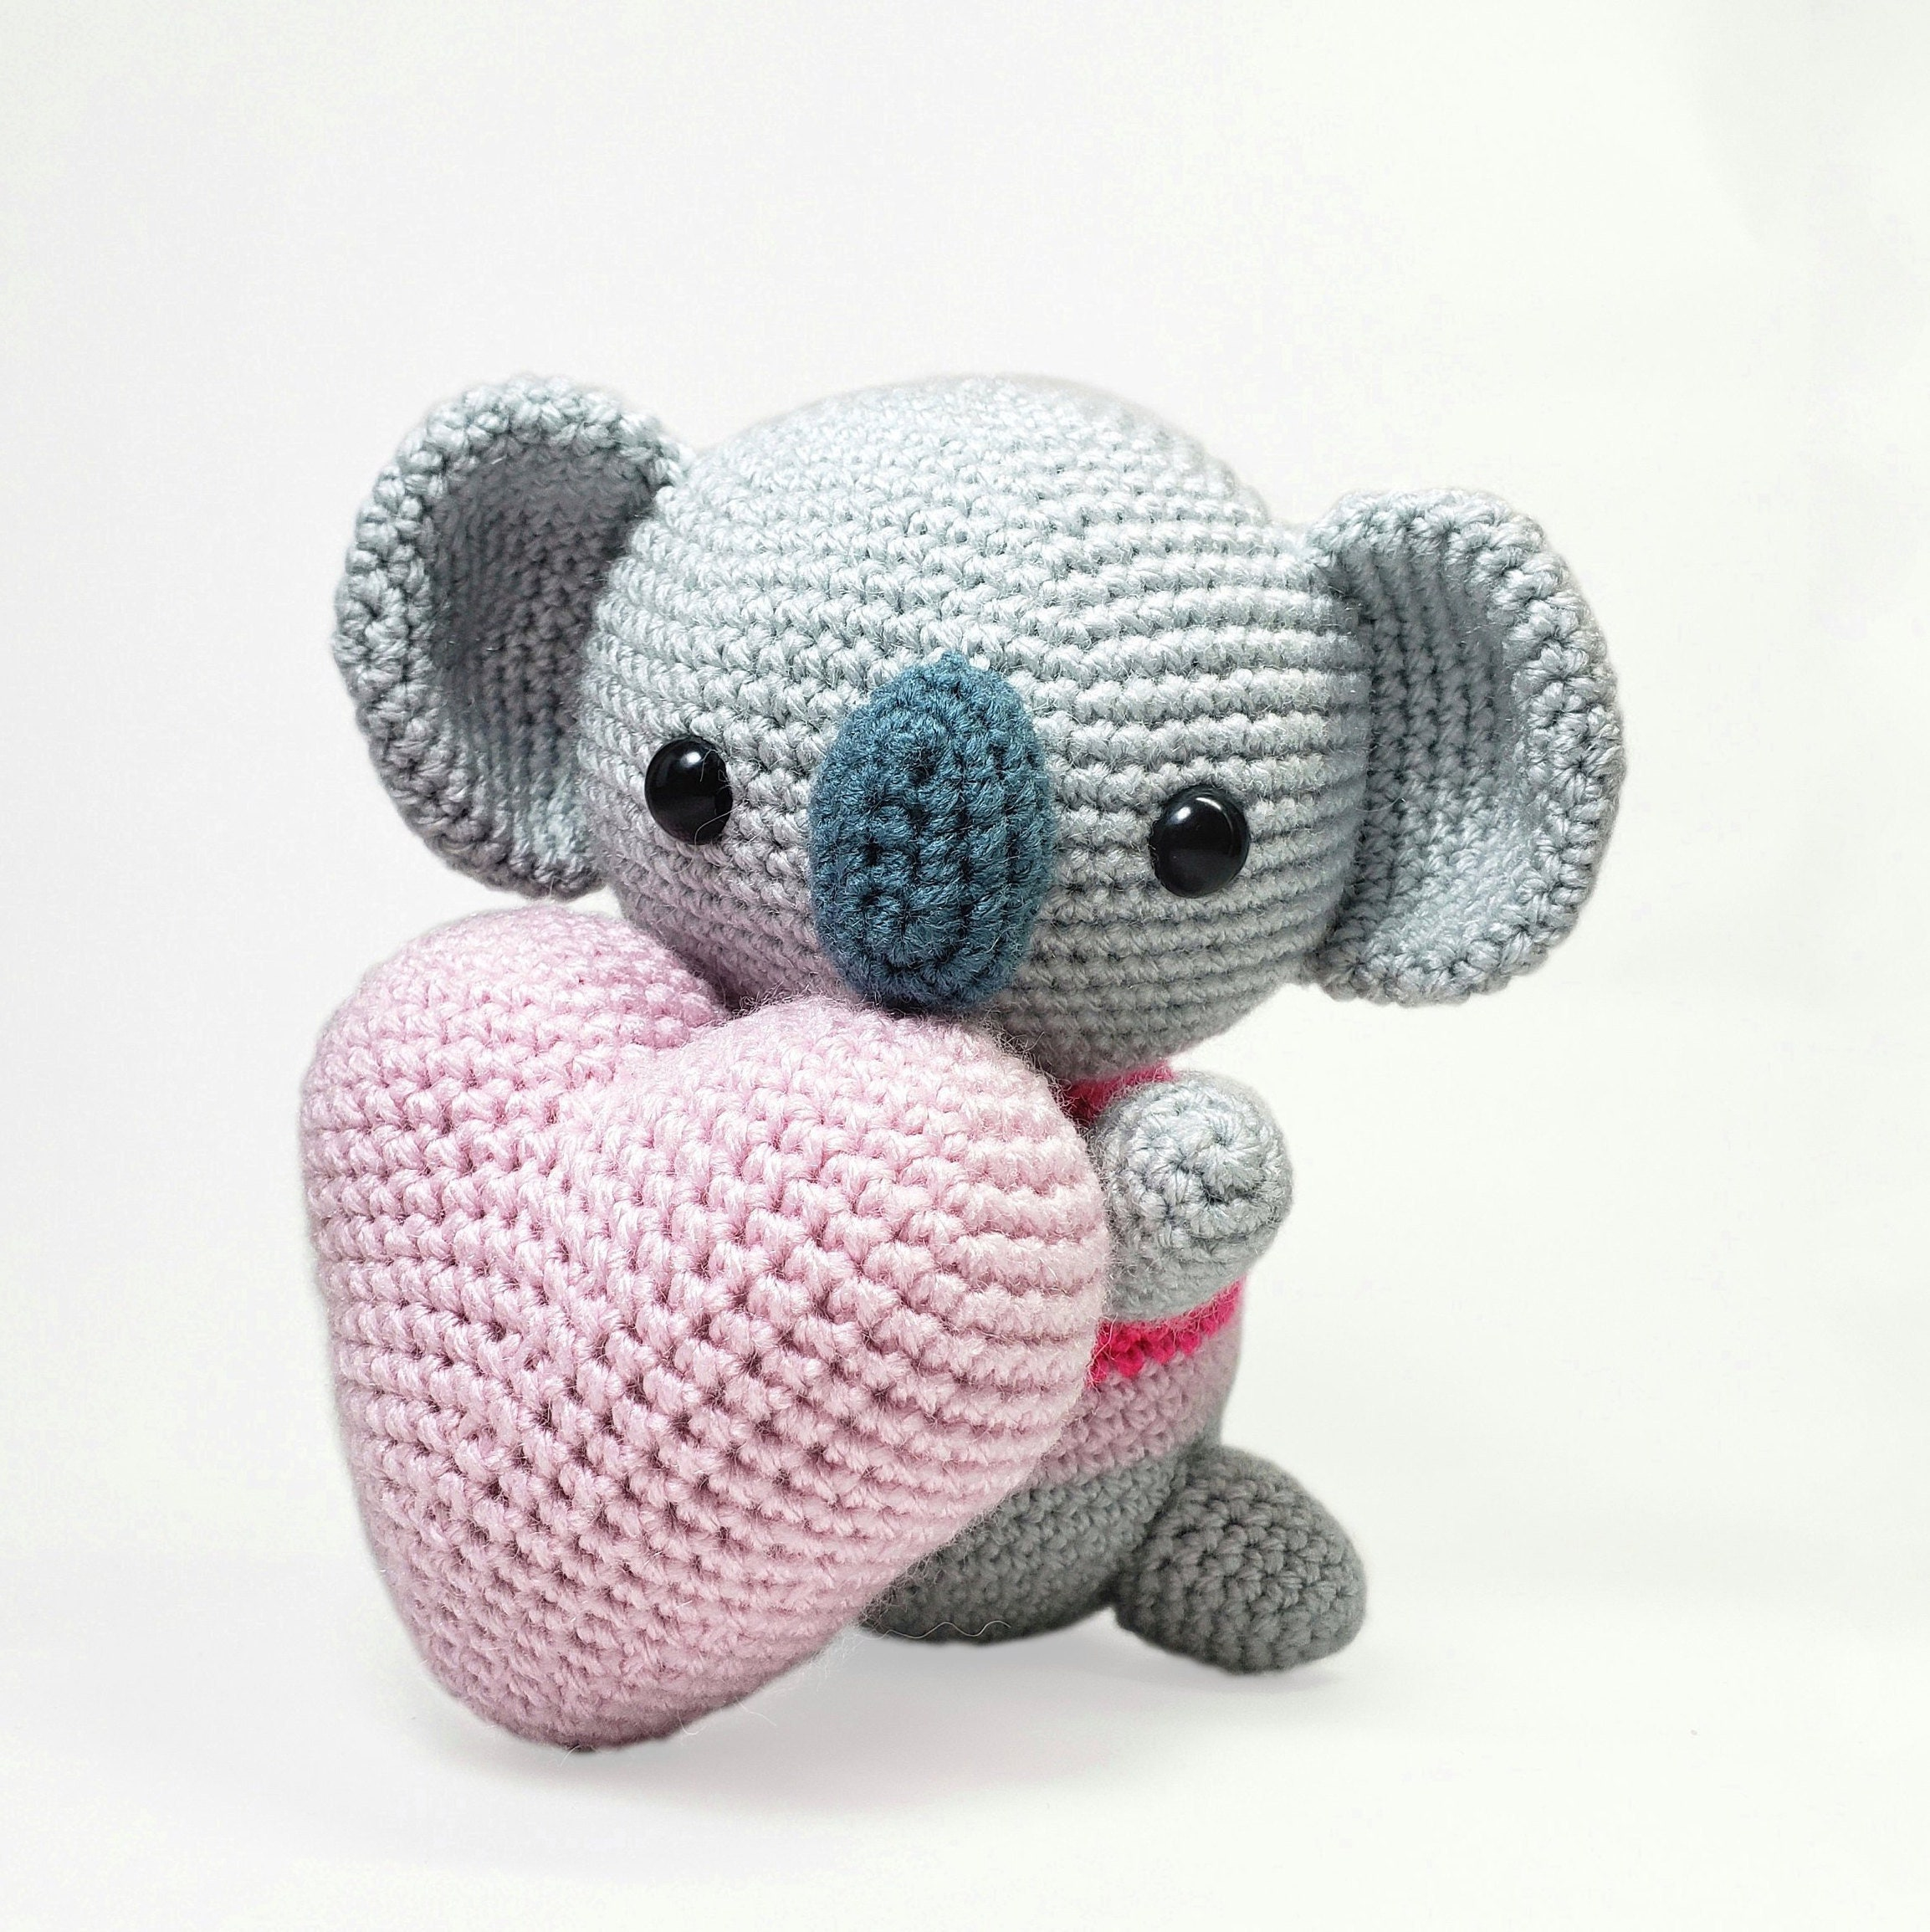 Amigurumi koala with heart pattern | Crochet patterns amigurumi ... | 2309x2307